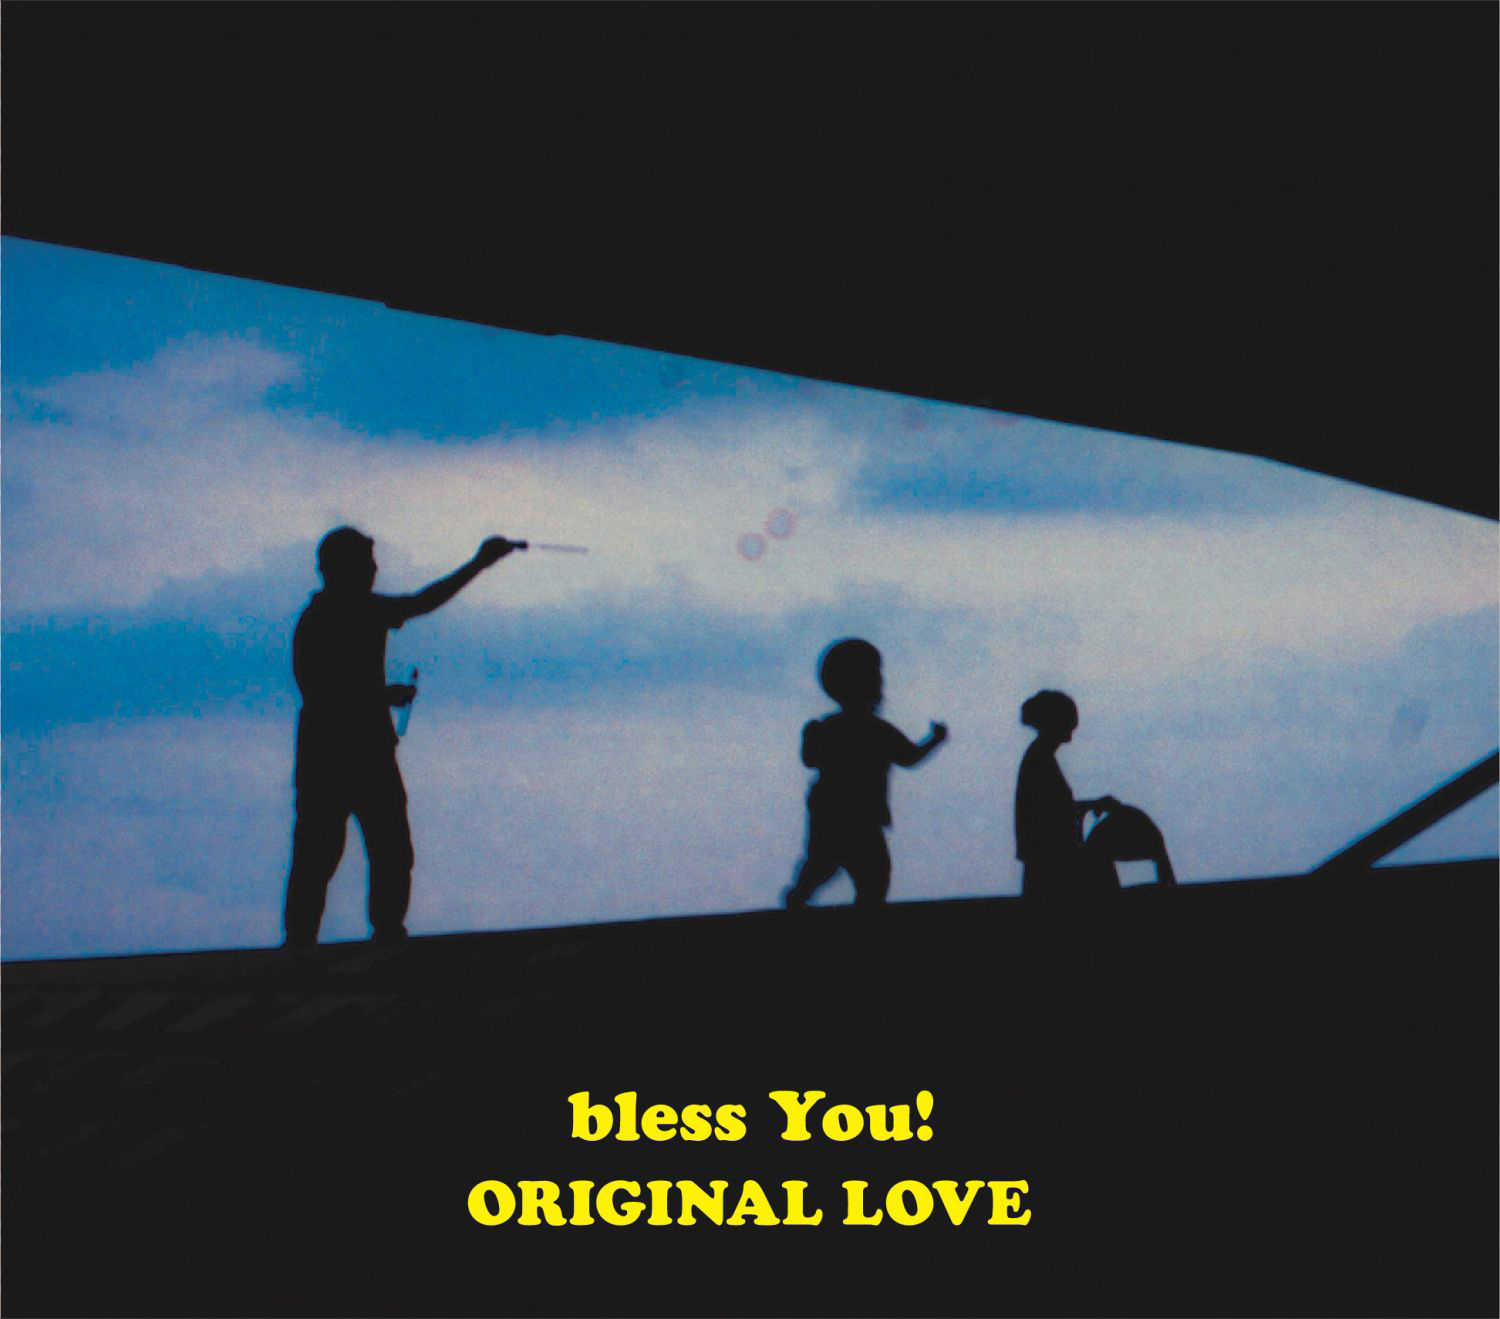 「bless You!」 photography by Takao Tajima